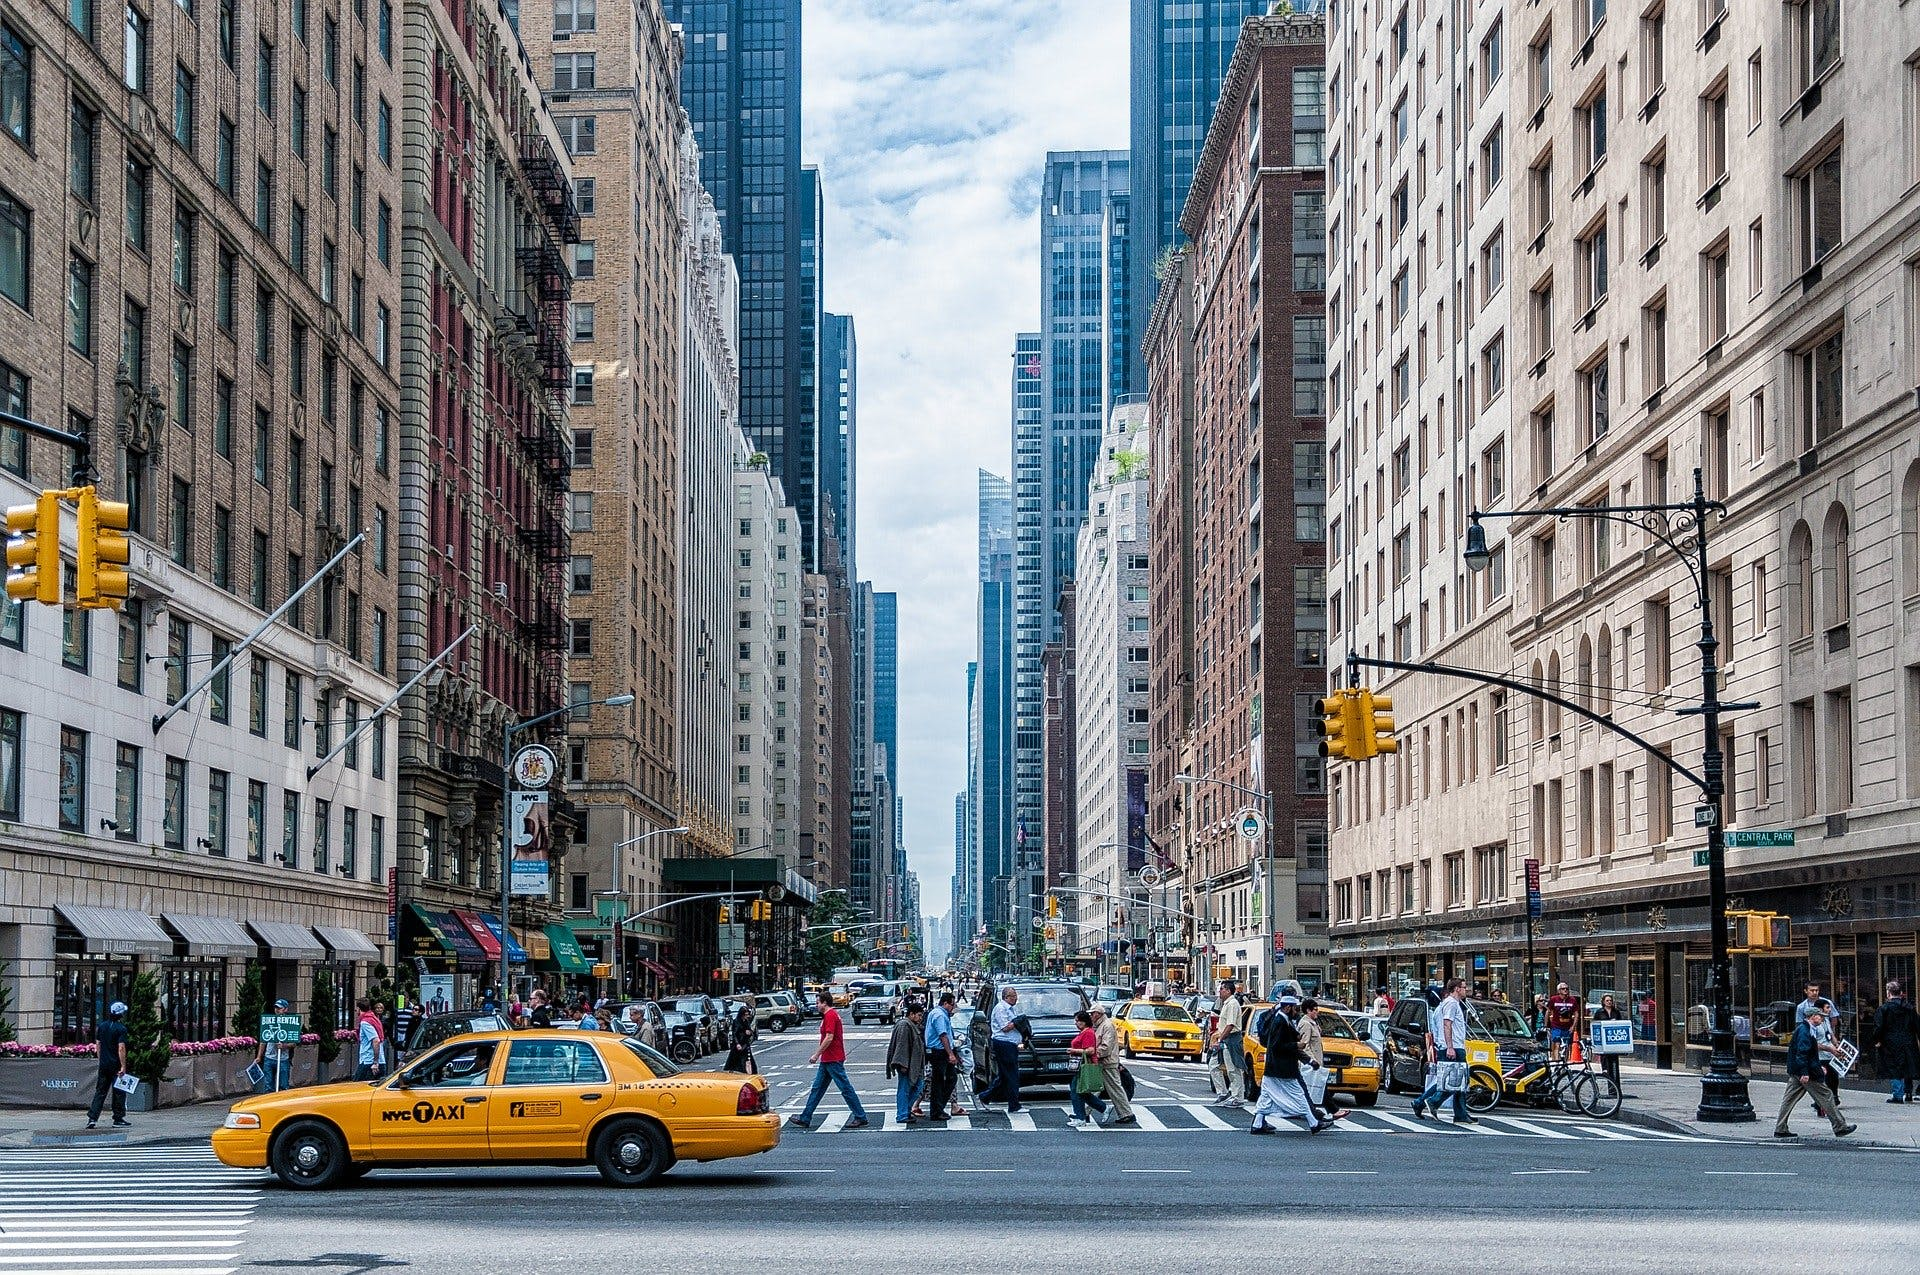 New York streets, buildings and a NYC yellow cab, photo by Pixabay